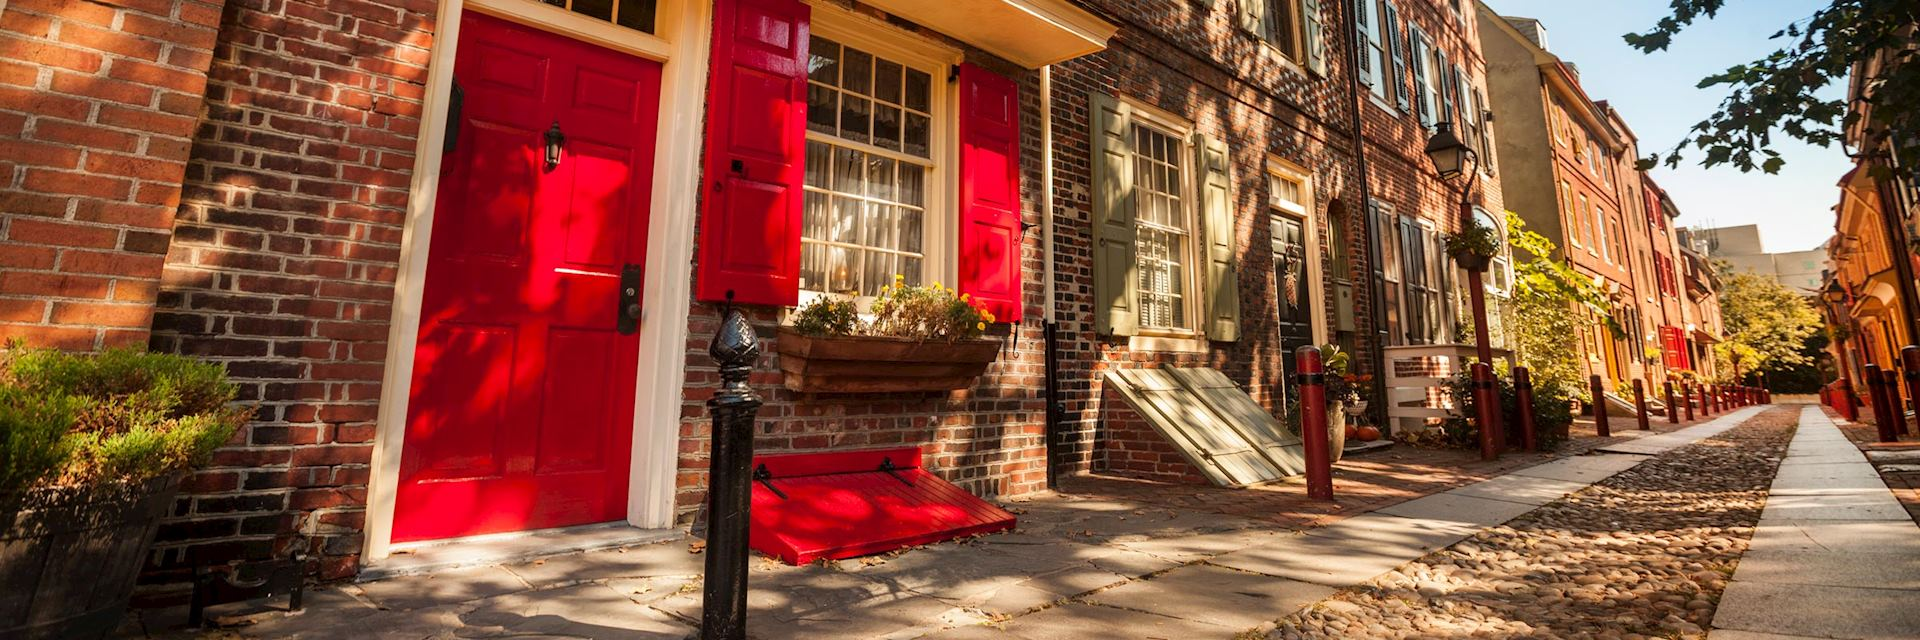 Historic houses in Philadelphia